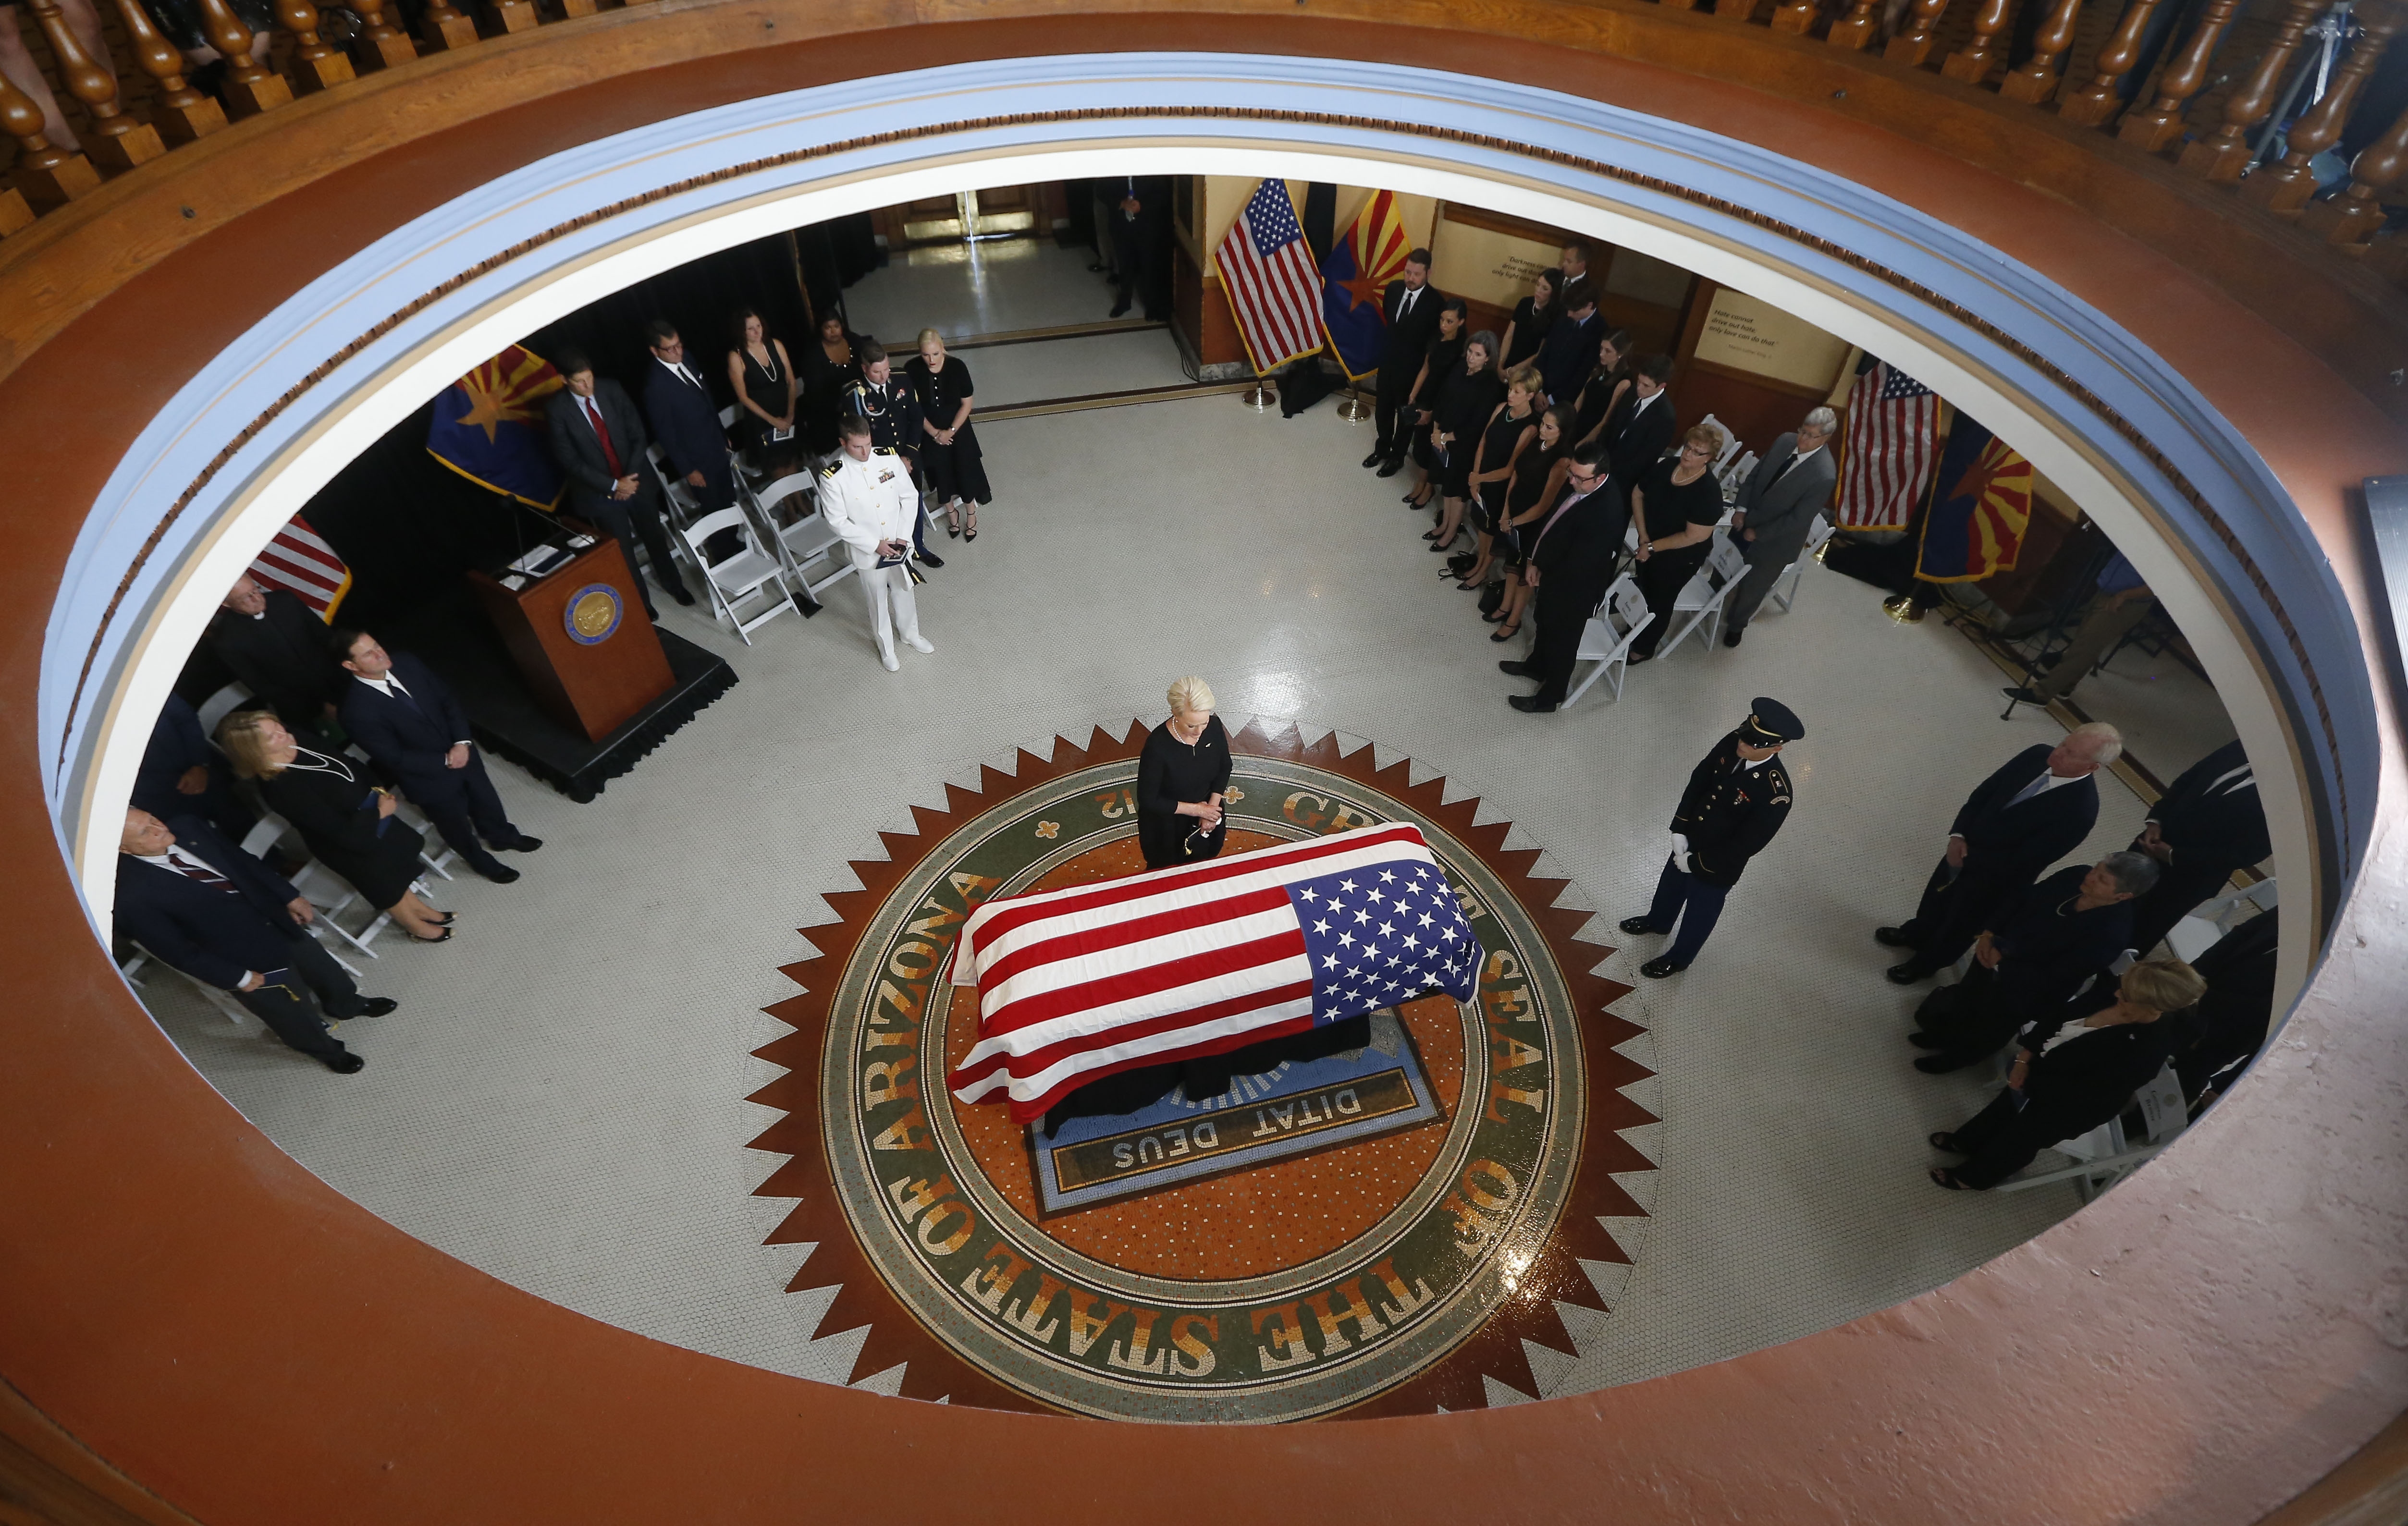 Cindy McCain, wife of, Sen. John McCain, R-Ariz. stands over the casket during a memorial service at the Arizona Capitol on August 29, 2018 in Phoenix, Arizona. Sen. McCain, a decorated war hero, died August 25 at the age of 81 after a long battle with Glioblastoma, a form of brain cancer.